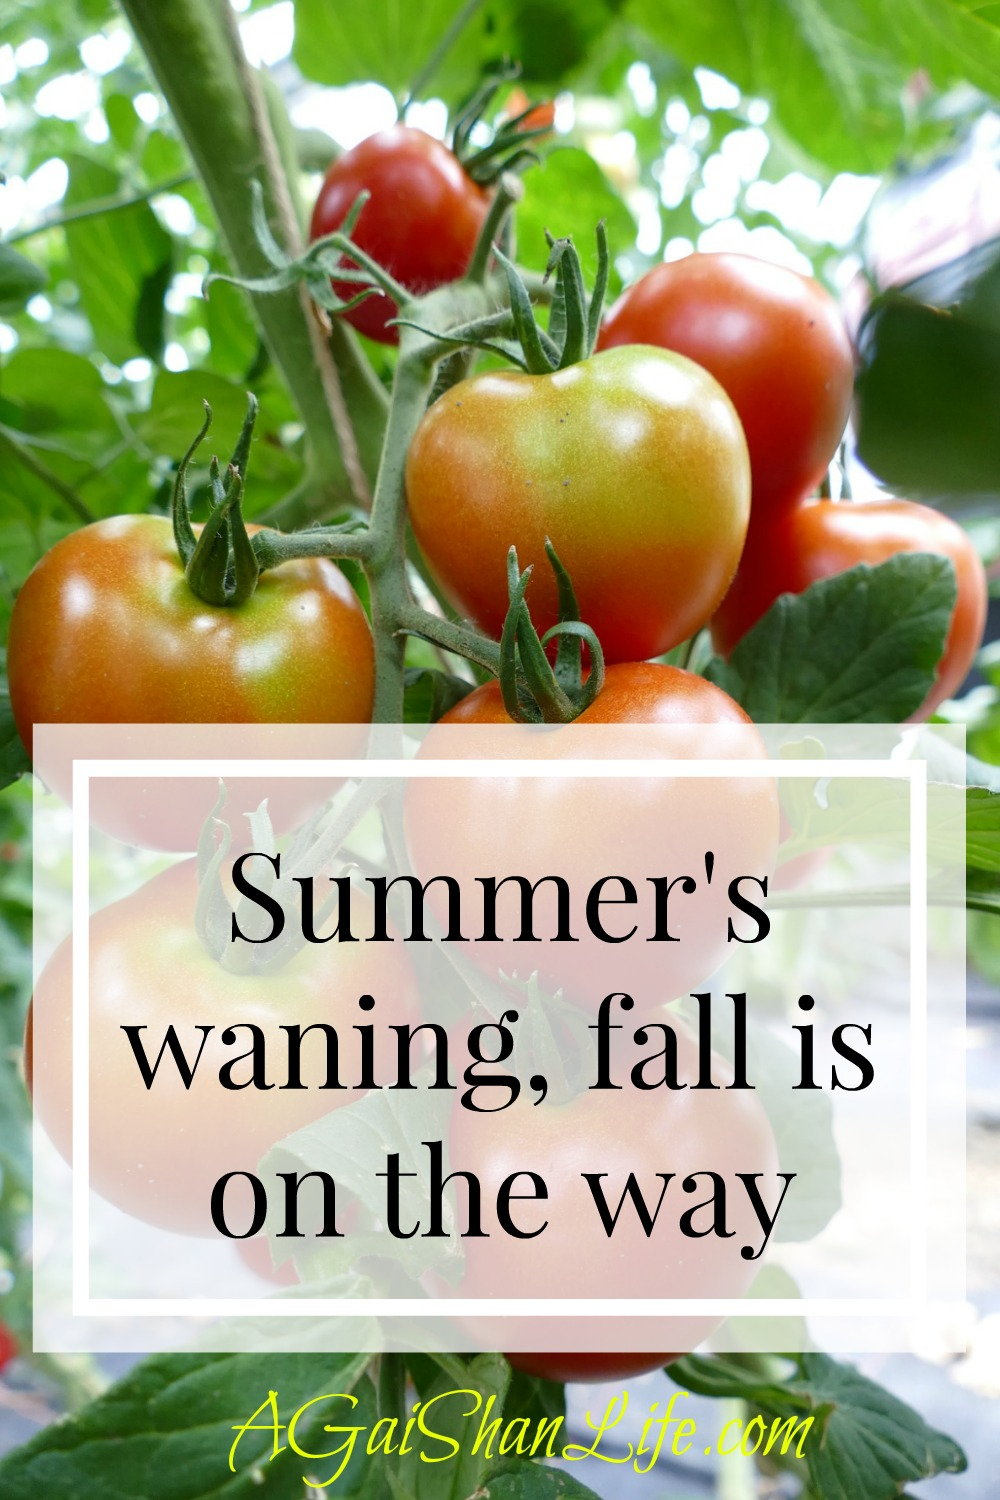 Summer's waning, what's next?